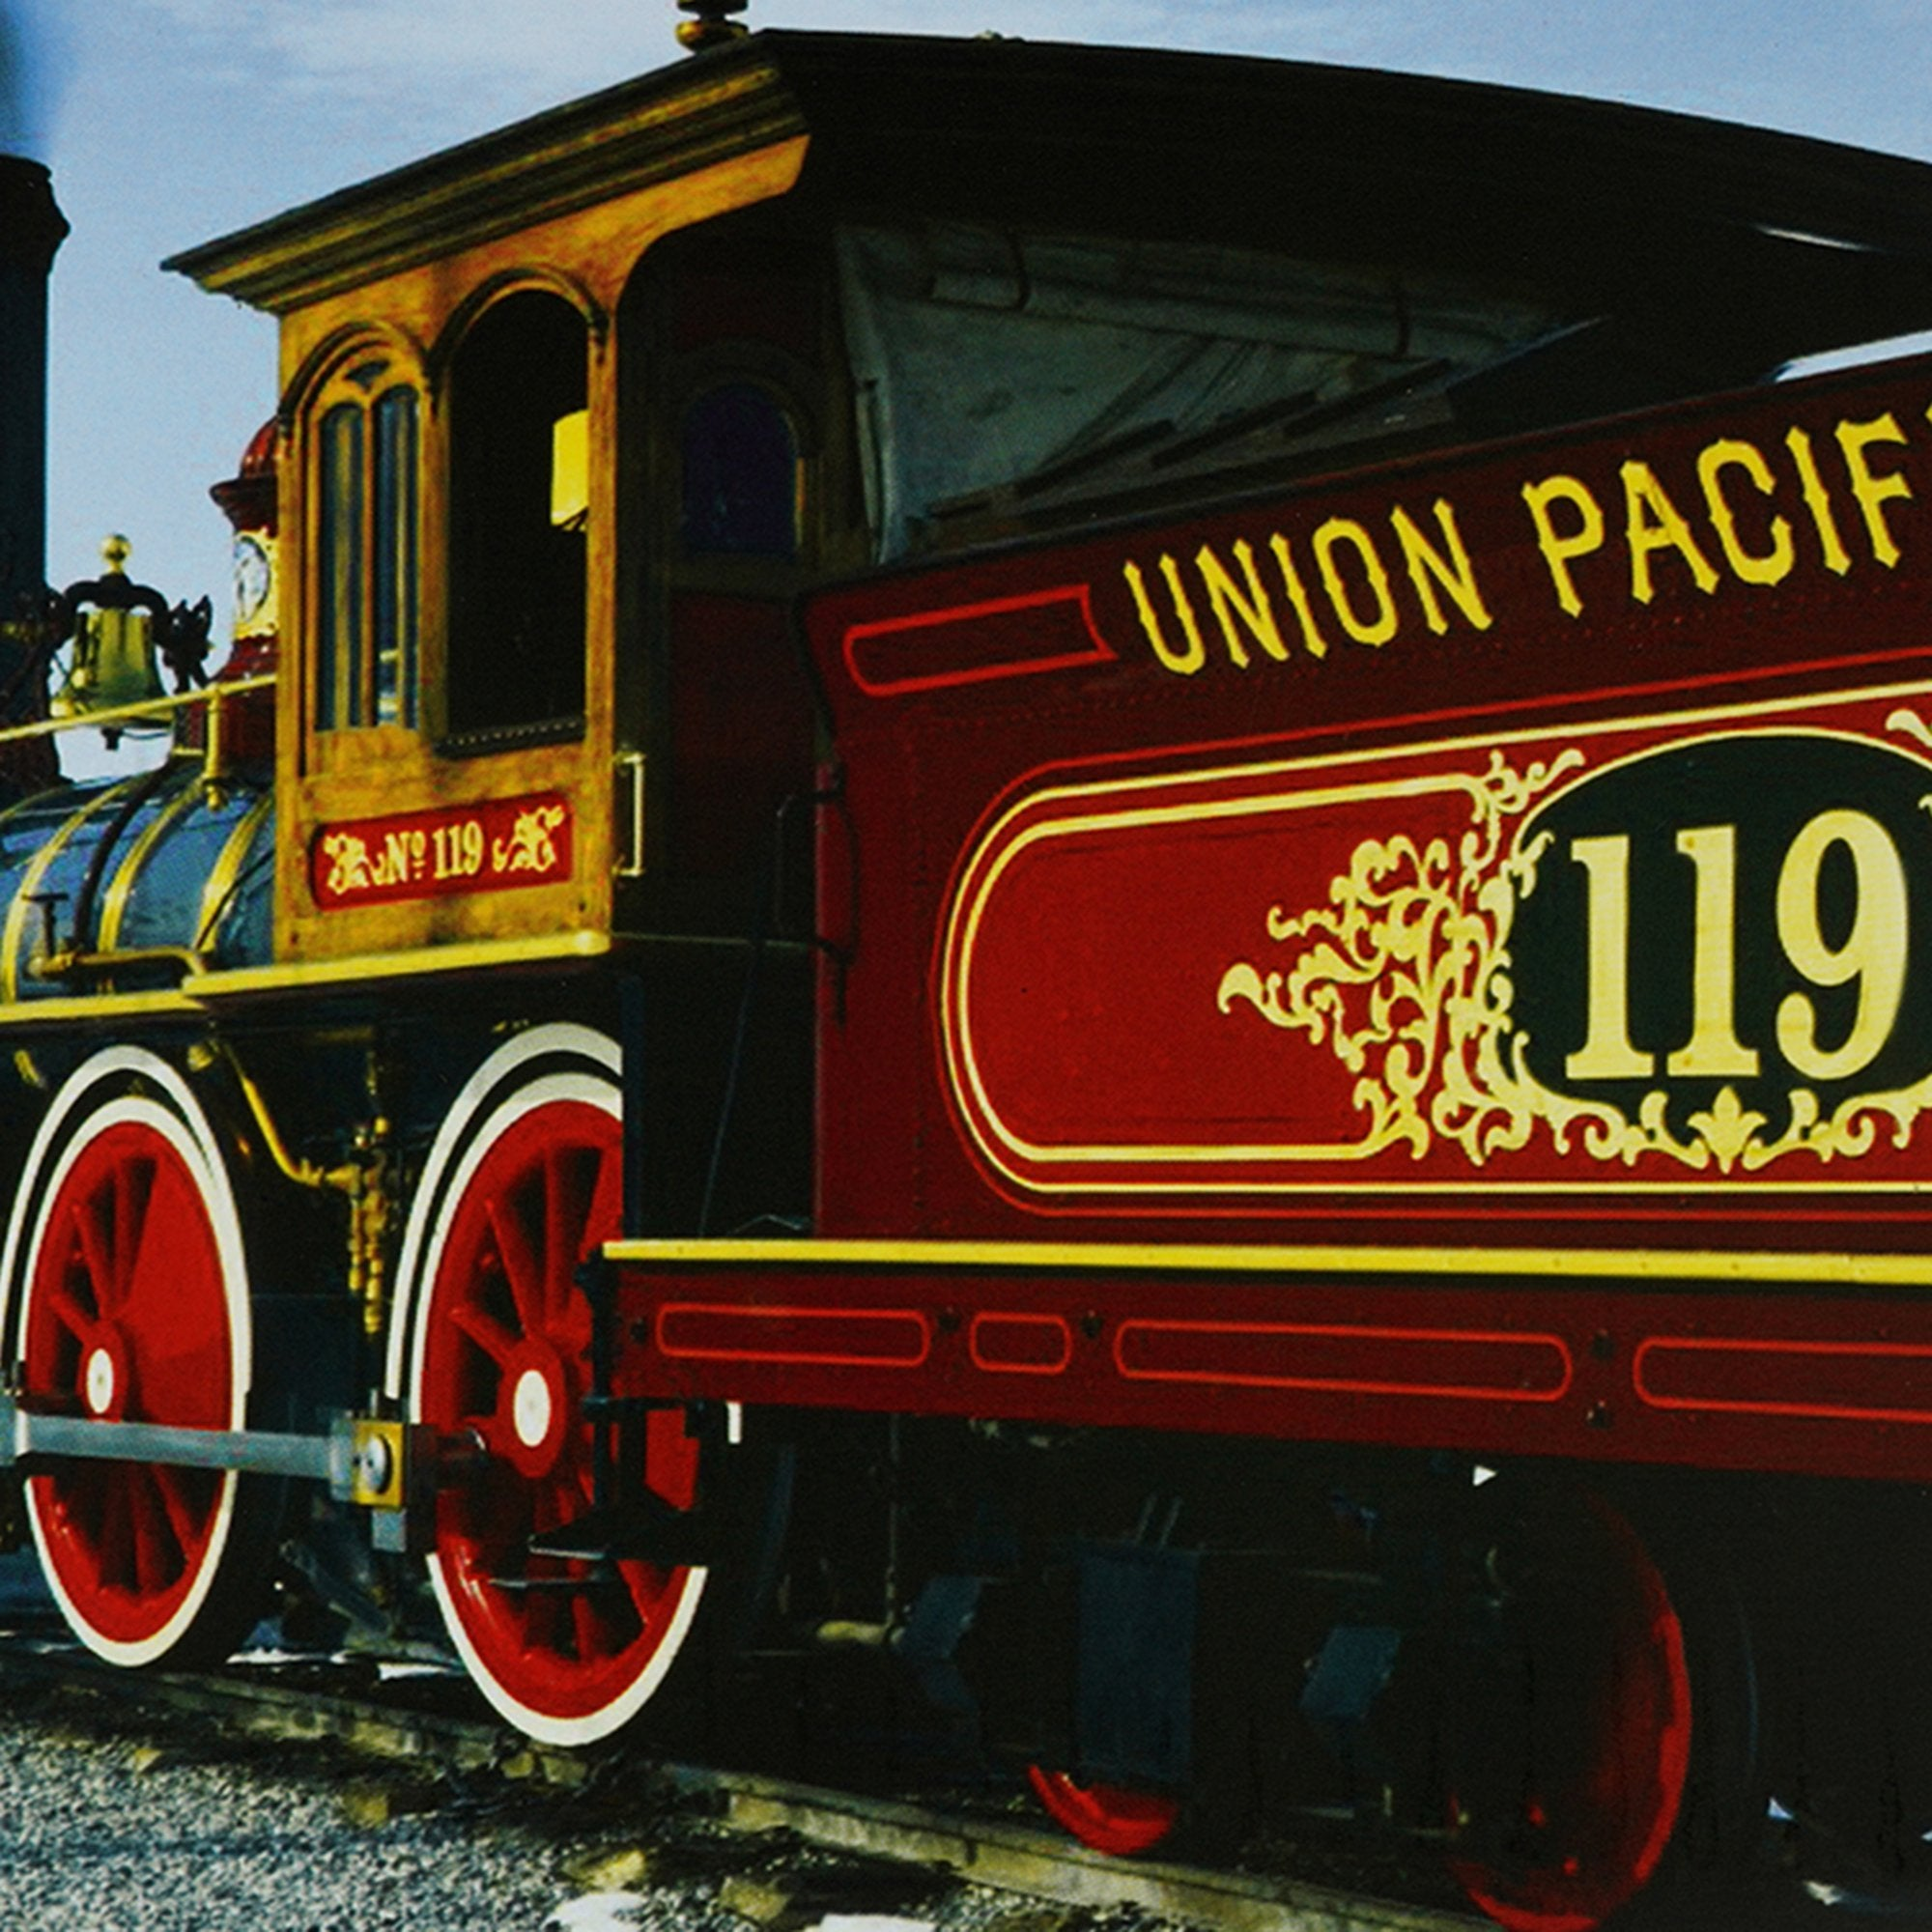 Union Pacific R.R. 119 Wall Plaque